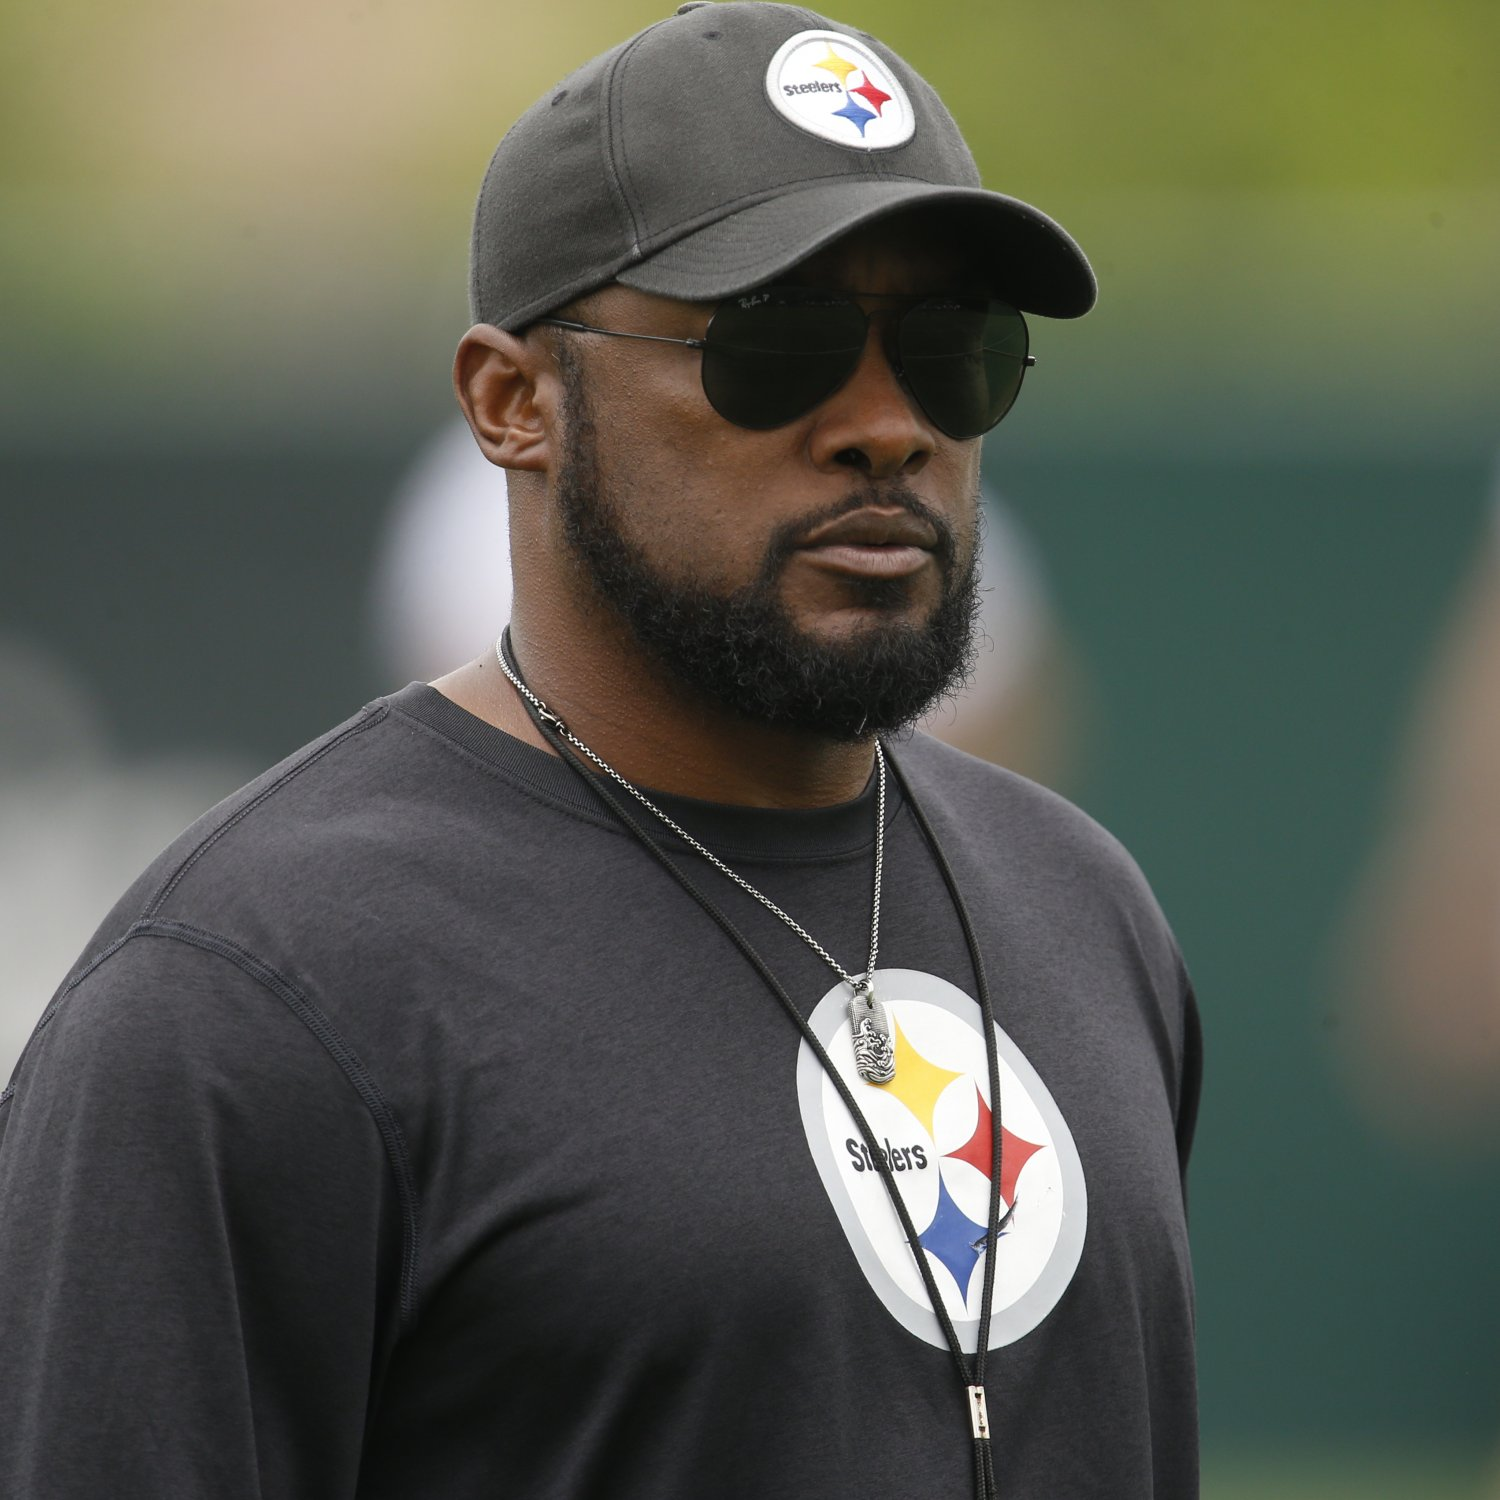 Pittsburgh Steelers Mike Tomlin S New Contract Ushers In: Mike Tomlin, Steelers Agree To New Contract: Latest